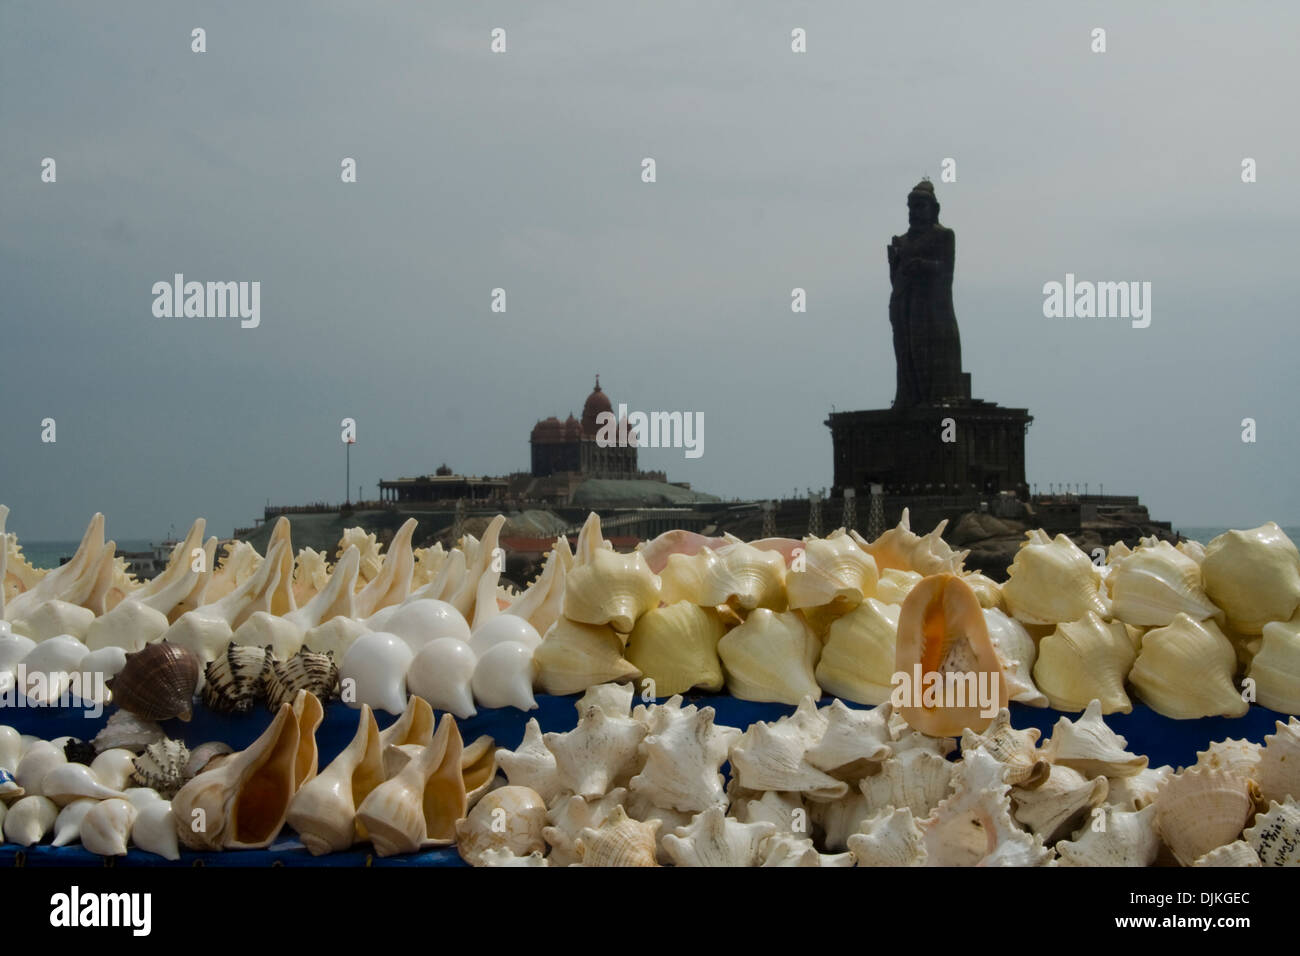 Variety sea shells on display for tourists with Rock Memorials in the backdrop at Kanyakumari, Tamilnadu, India, Asia - Stock Image